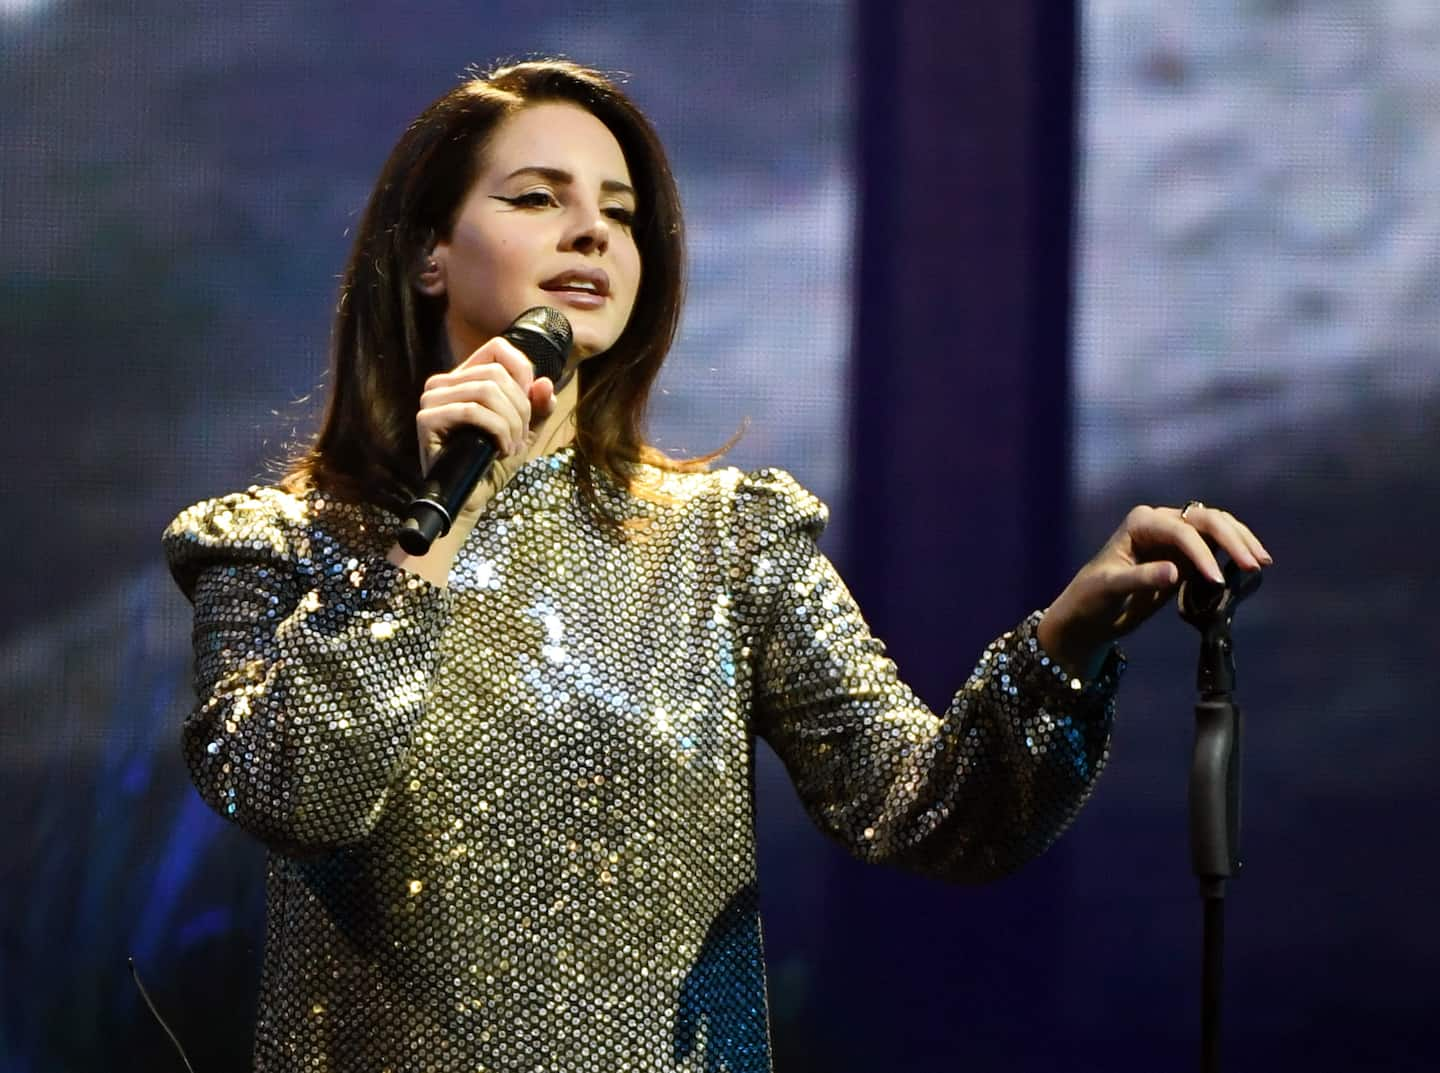 Lana Del Rey continues to defend her comments on Trump and race